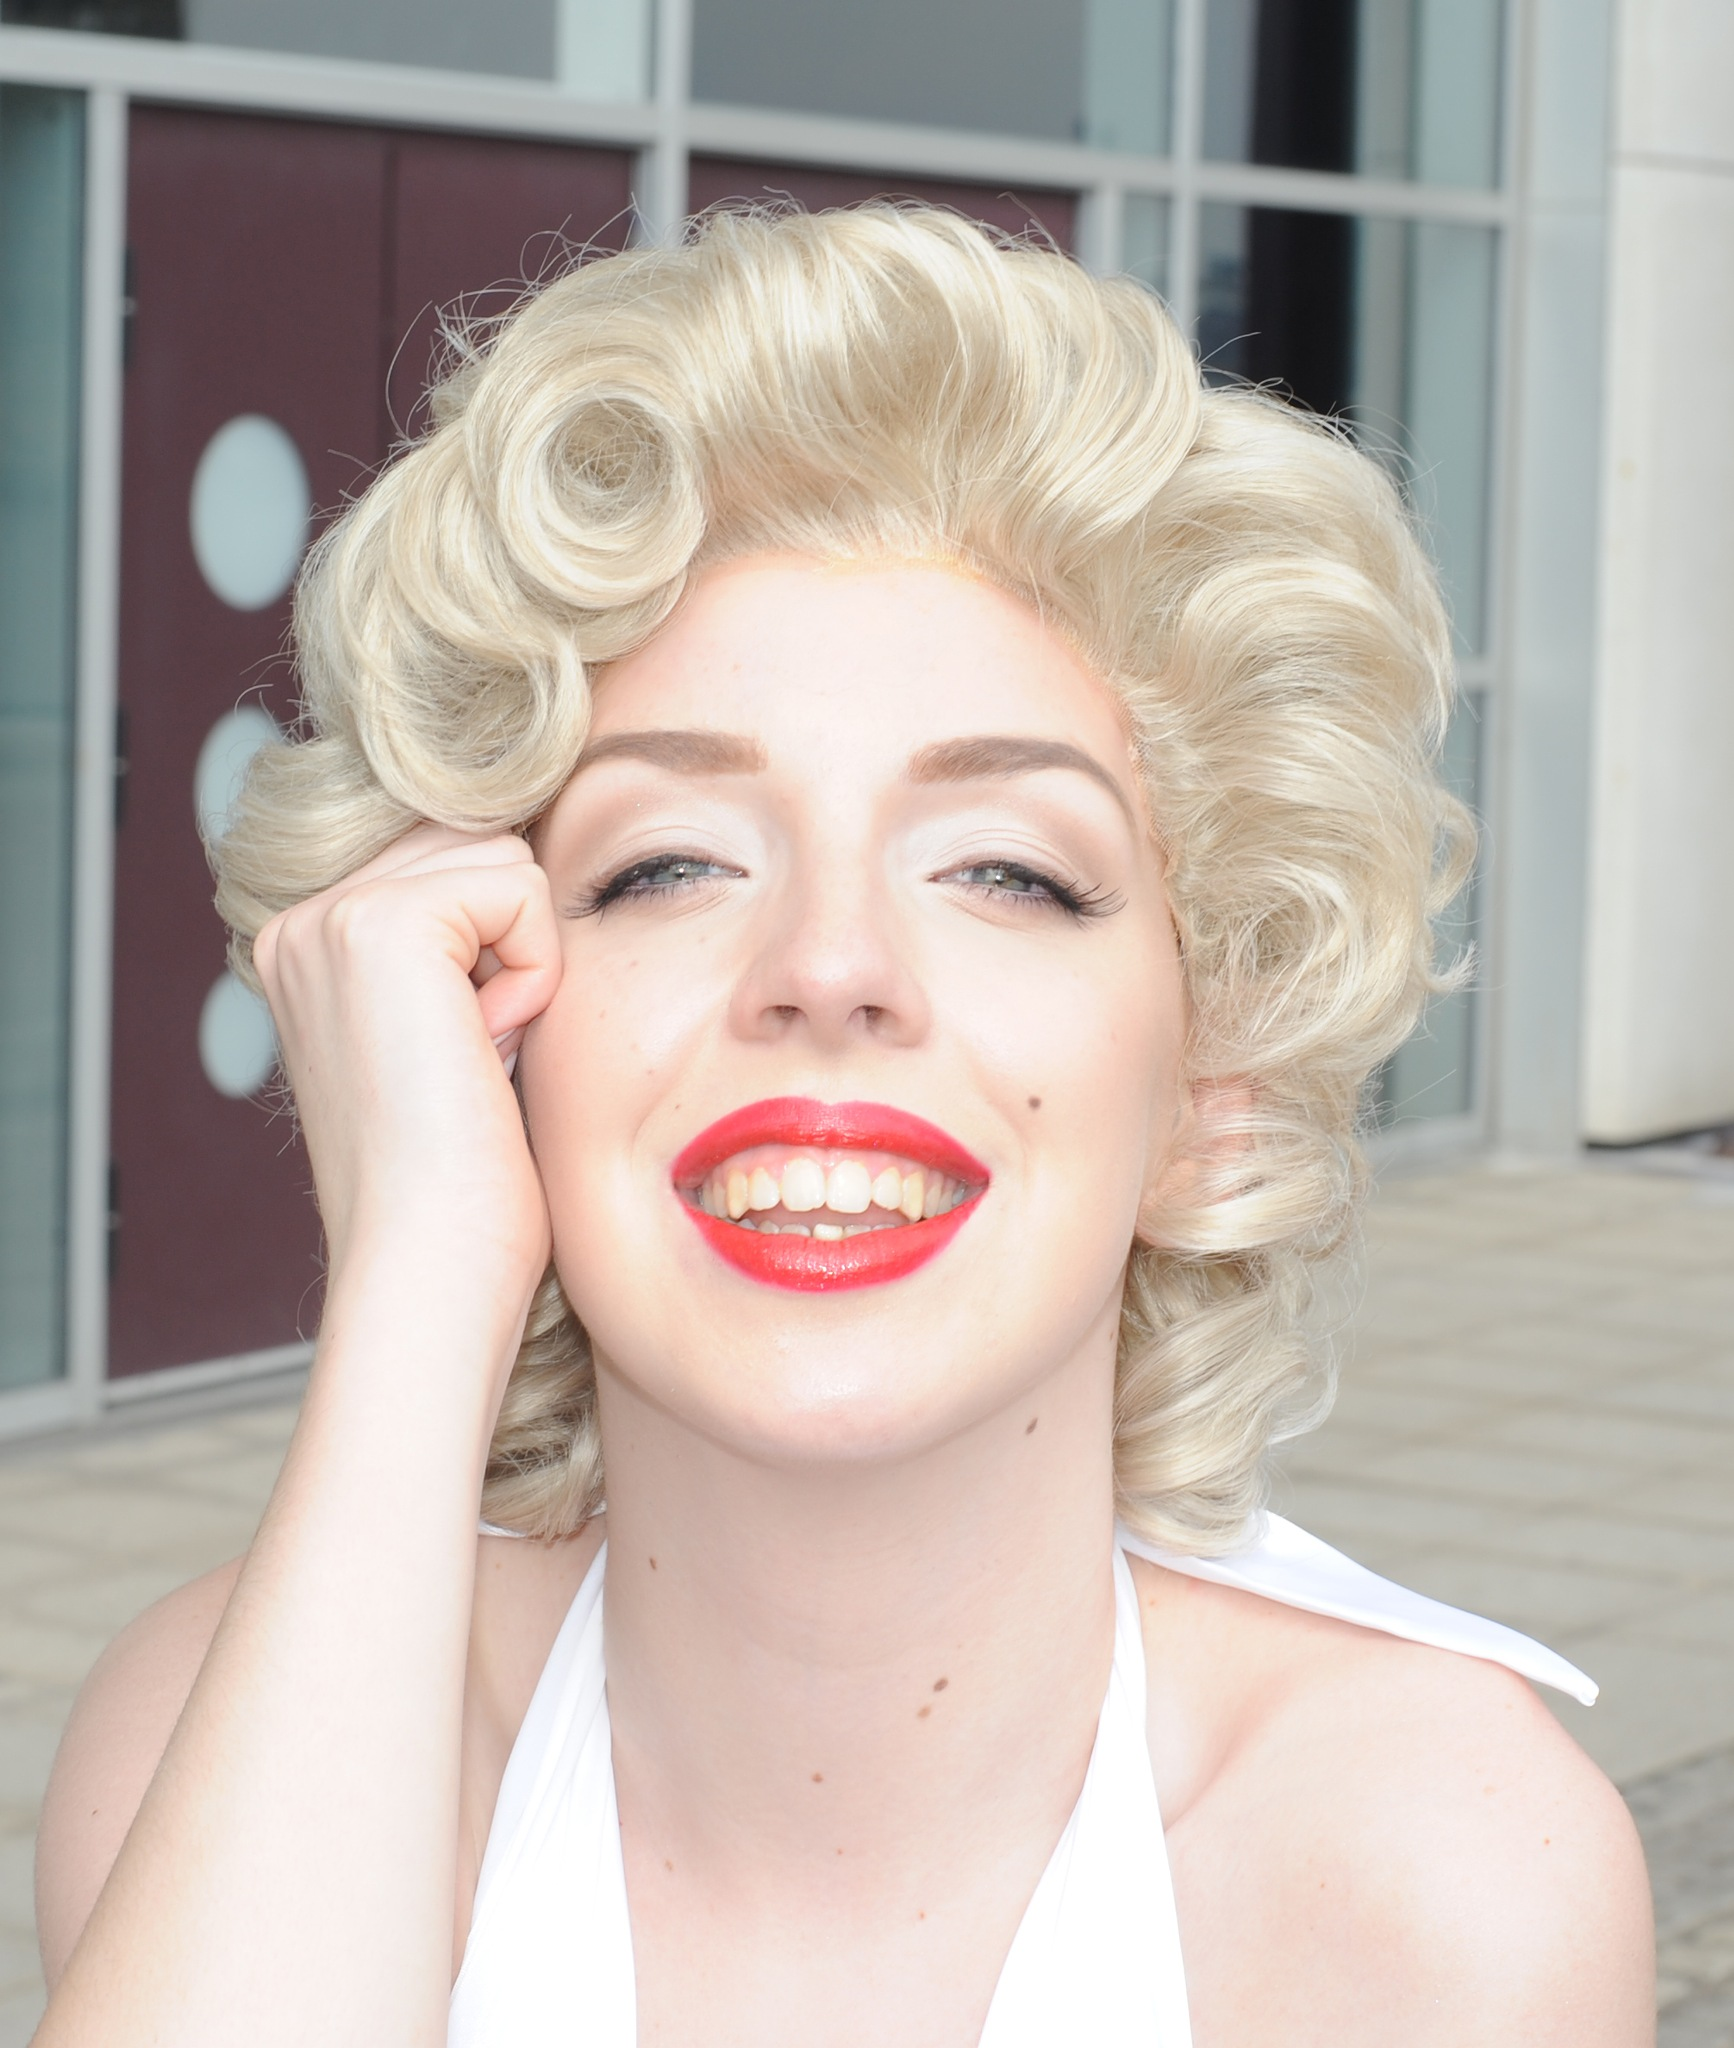 Marilyn Monroe cosplay @ MCM Comic-con -Excel centre London by og_IMX